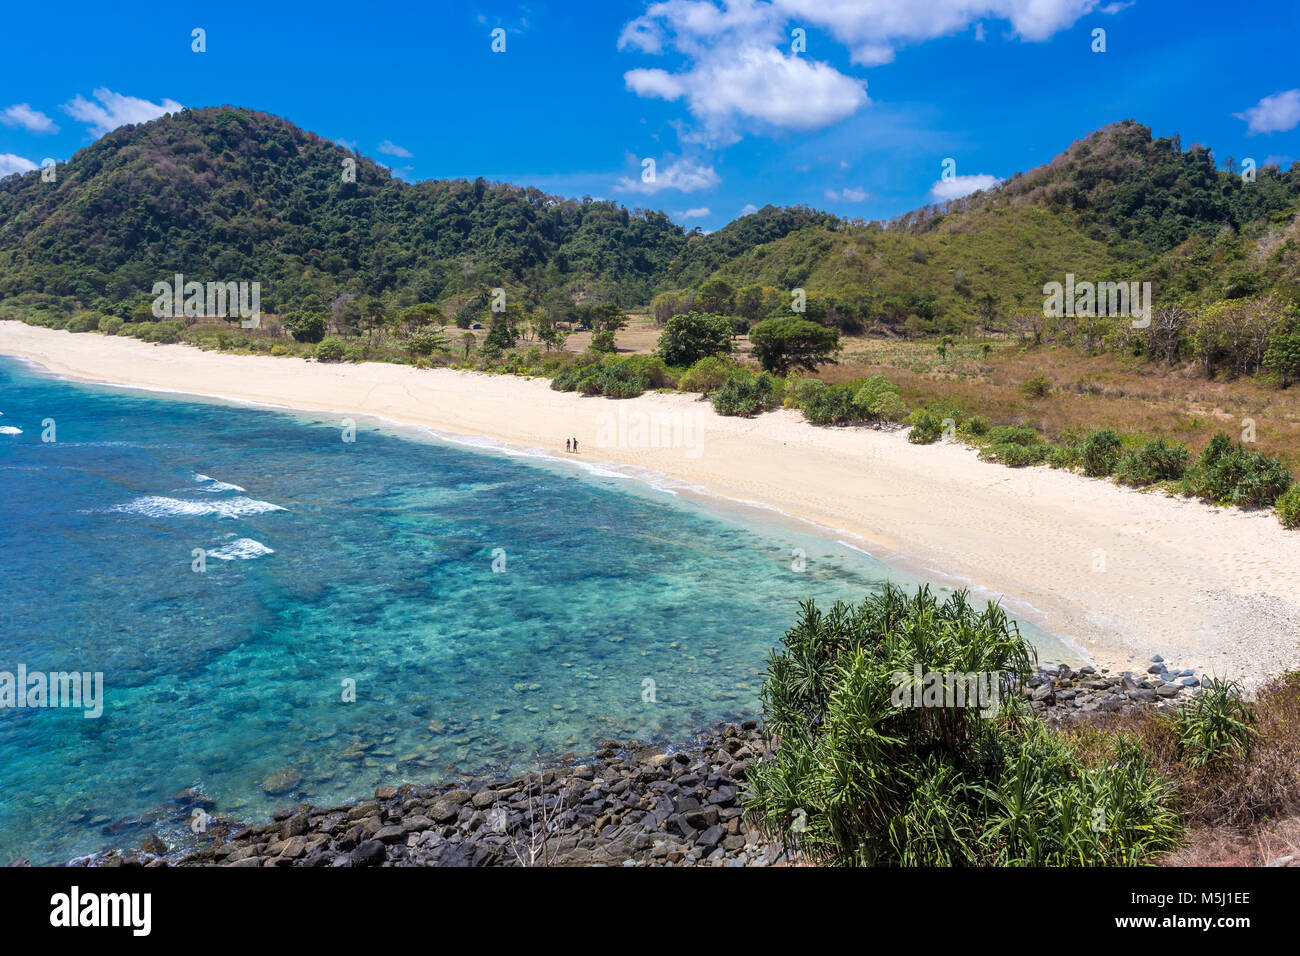 Indonesia, Lombok, ocean coastline - Stock Image